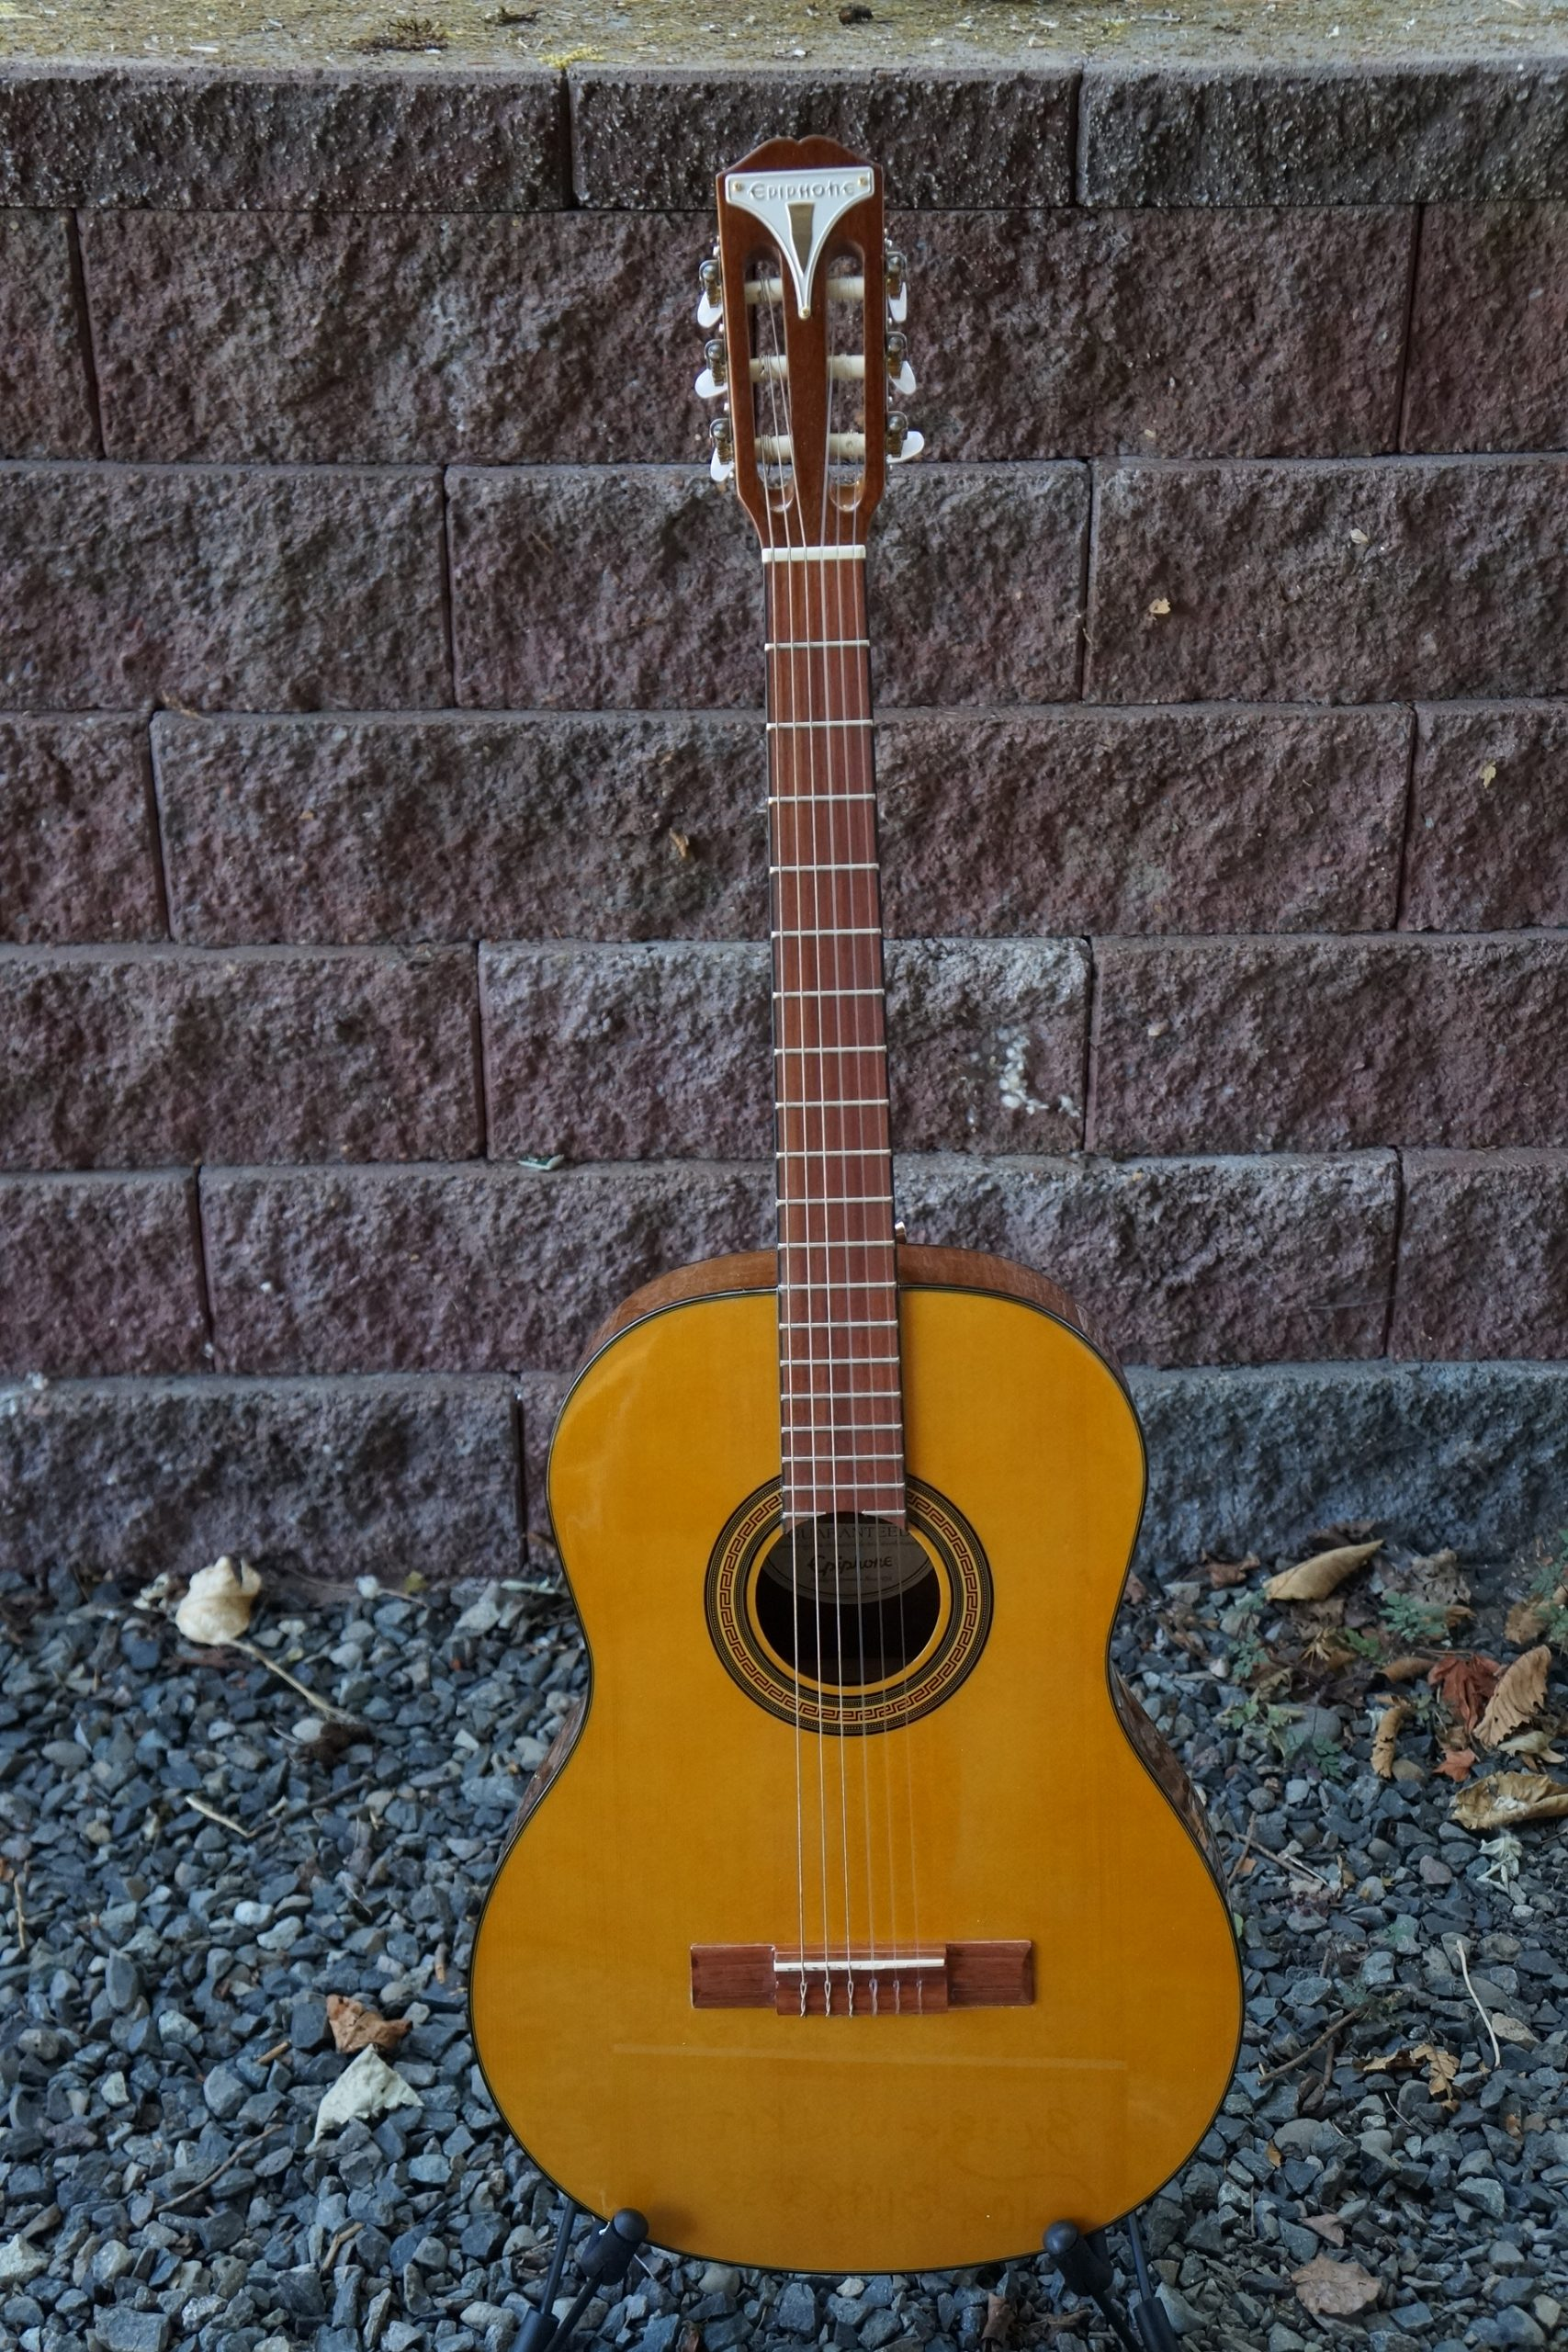 Epiphone Pro-1 Classical Nylon String Guitar in Natural Finish with Strap Lugs